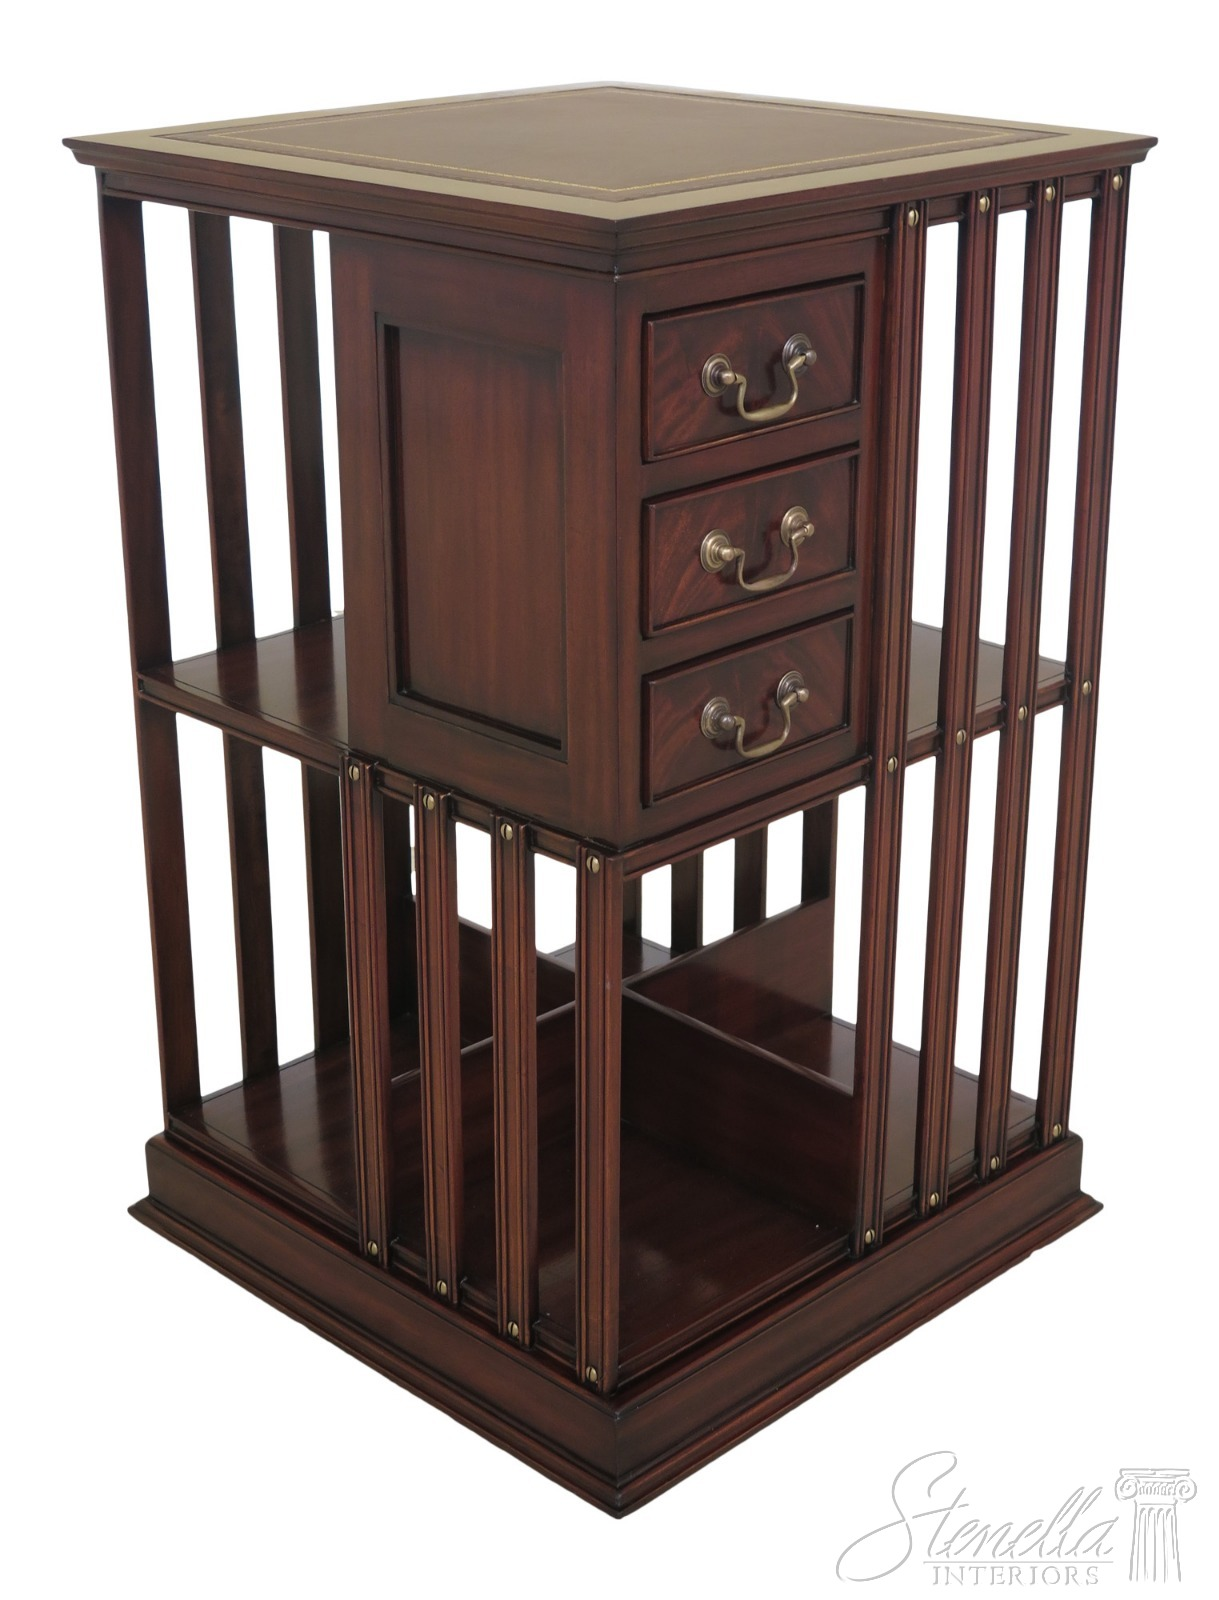 Details About 47316ec English Style Leather Top Revolving Mahogany Bookcase New